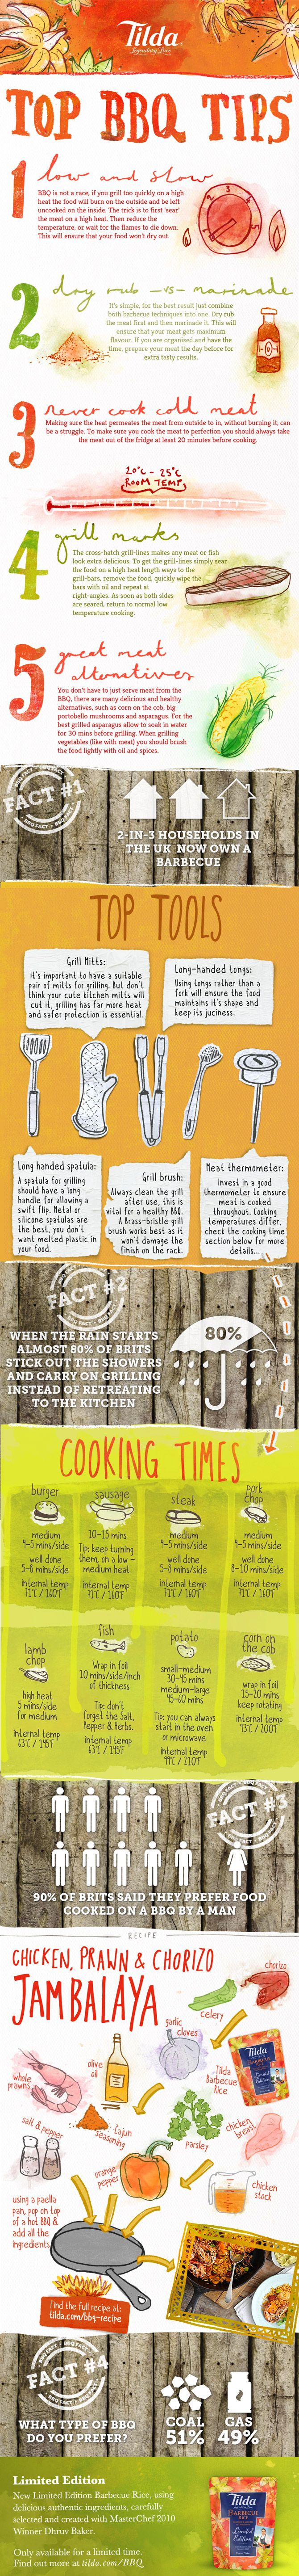 This infographic is to support the launch of Tilda Basmati Rice's latest product, Barbecue Rice. It has several different sections including: Tilda's